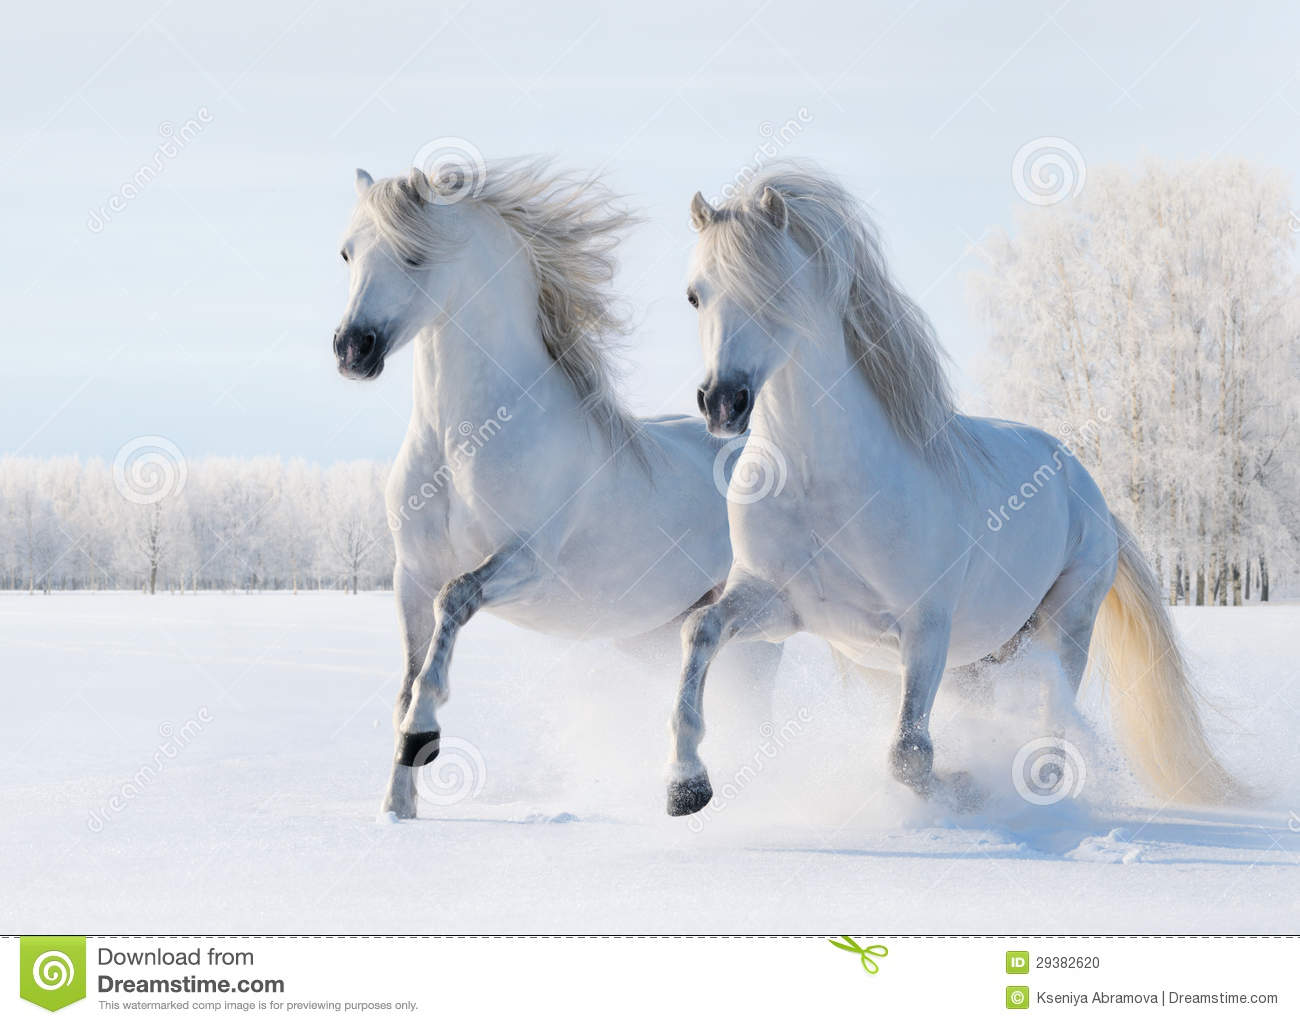 white horse beach christian personals Hd for amazingness took the ponies to the beach it was amazing so here's a short collage of  cute and funny horse videos compilation cute moment of.